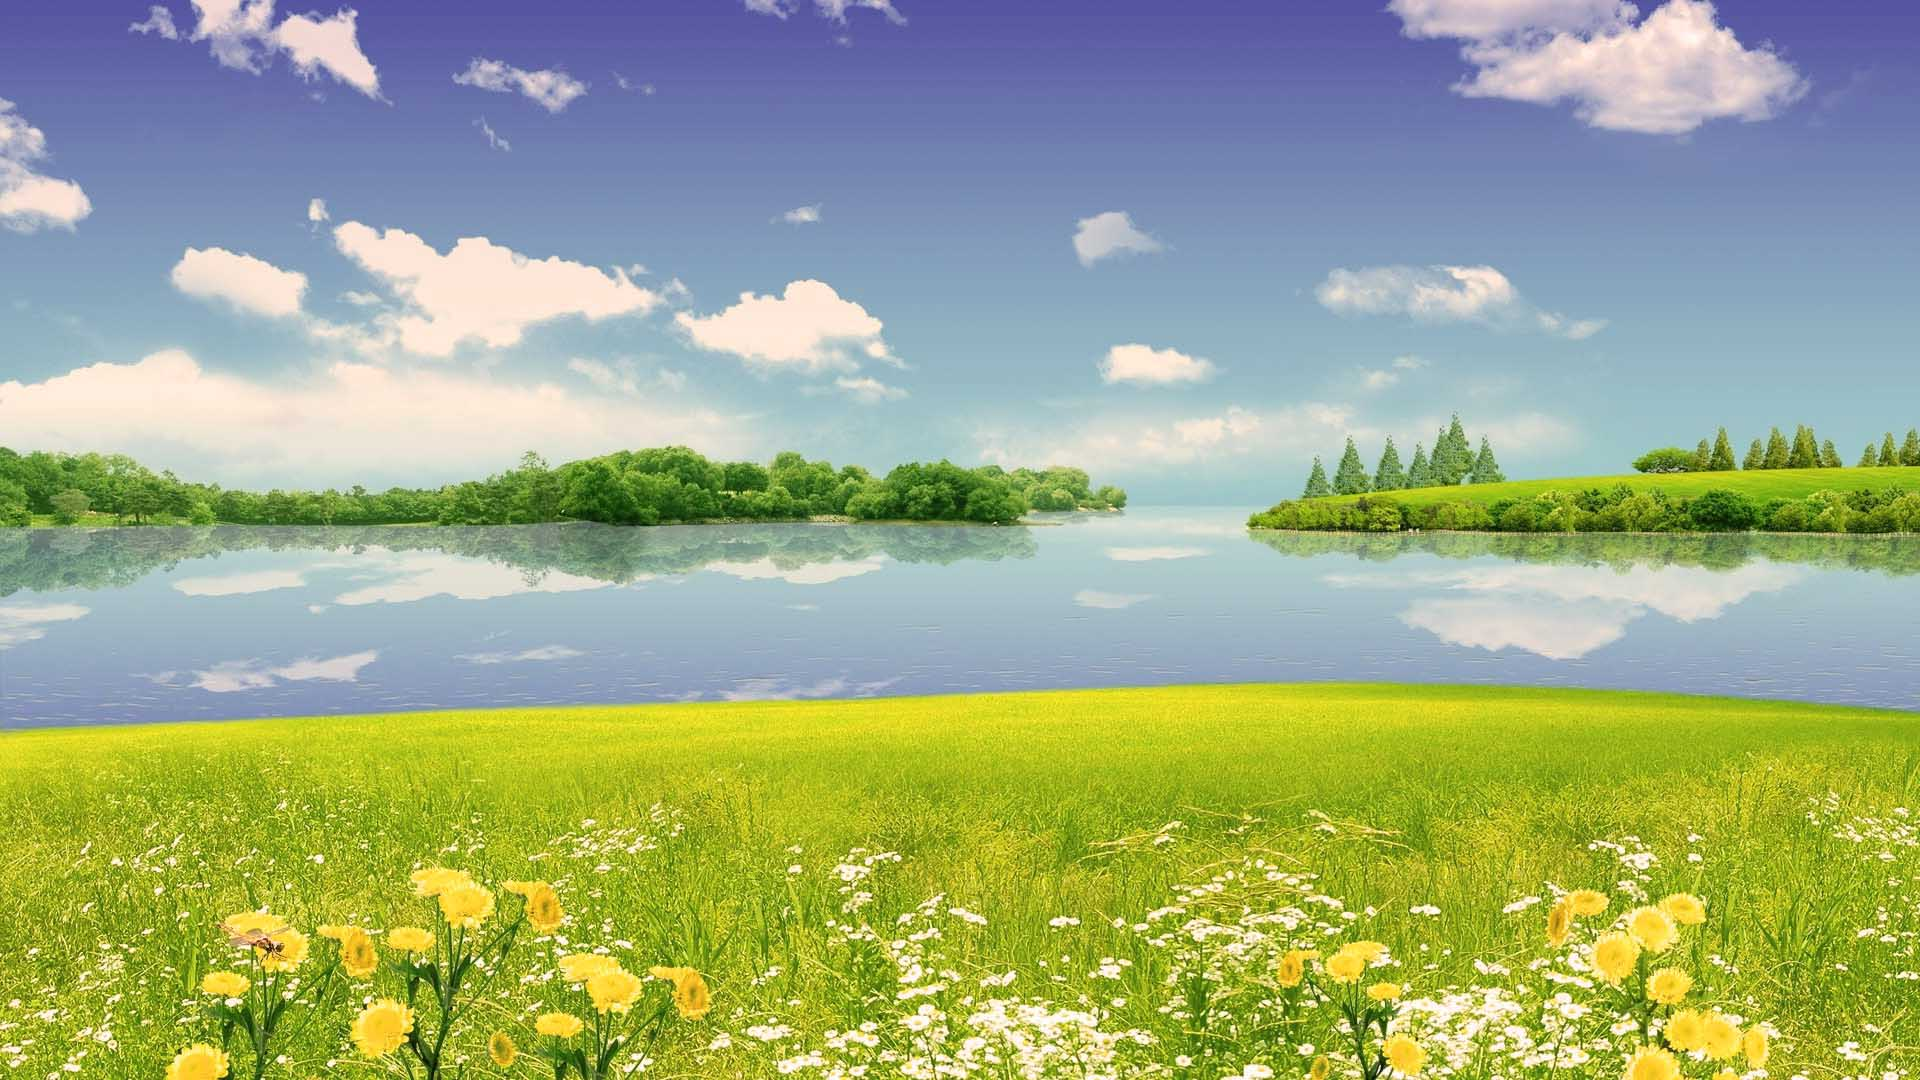 summer scenes widescreen full hd wallpaper for desktop background 1920x1080